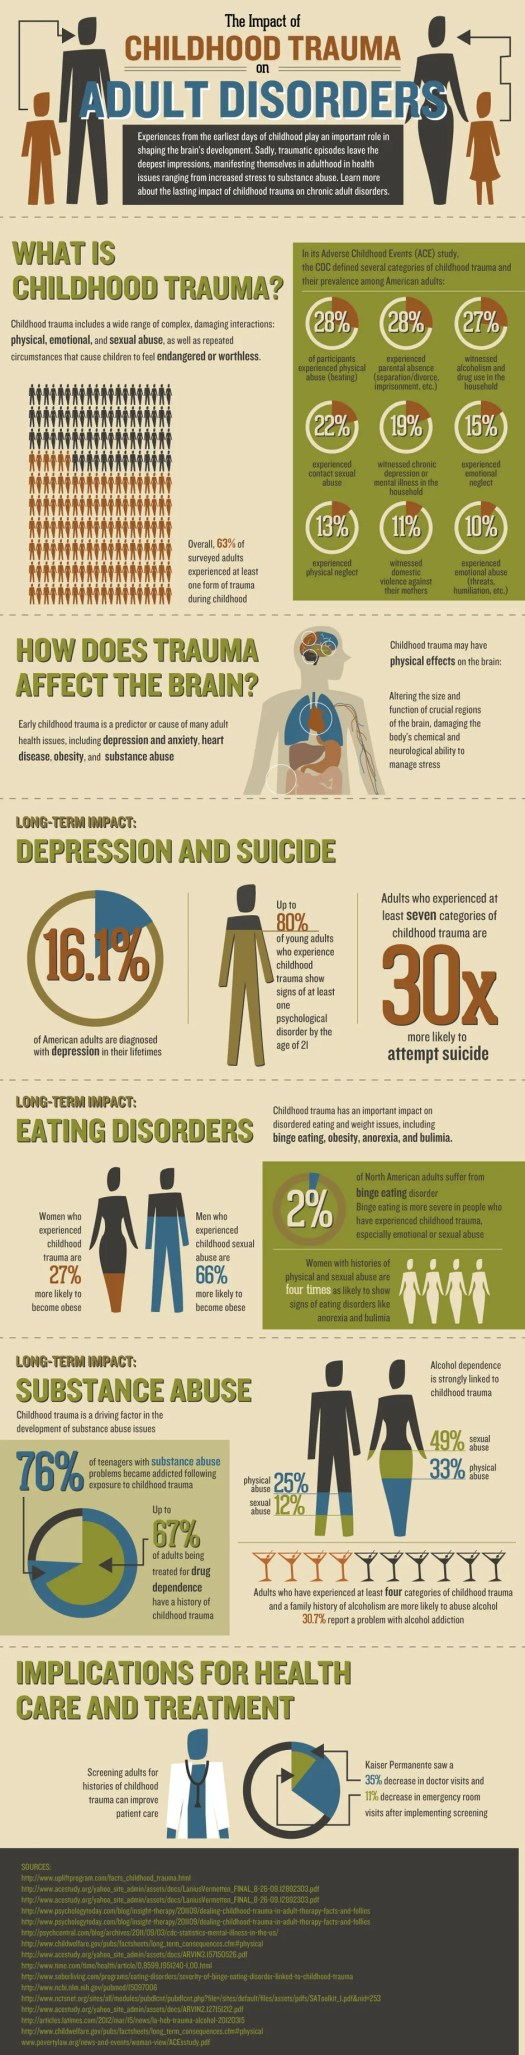 Infographic Depicting the Impact of Childhood Trauma on Adult Disorders